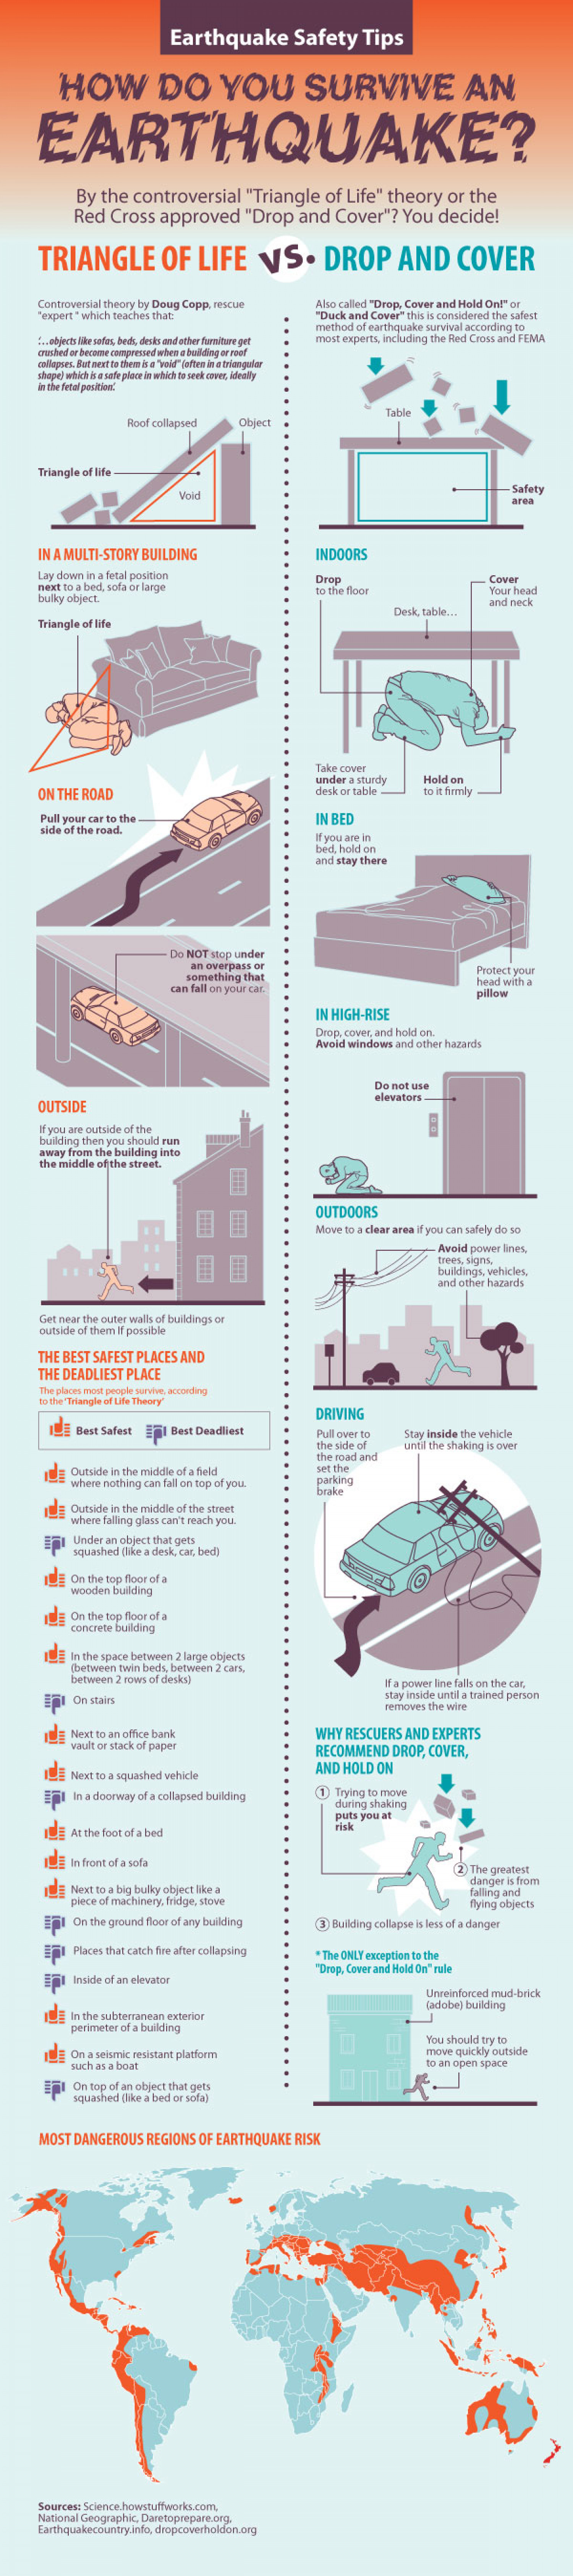 Earthquake Tips Infographic